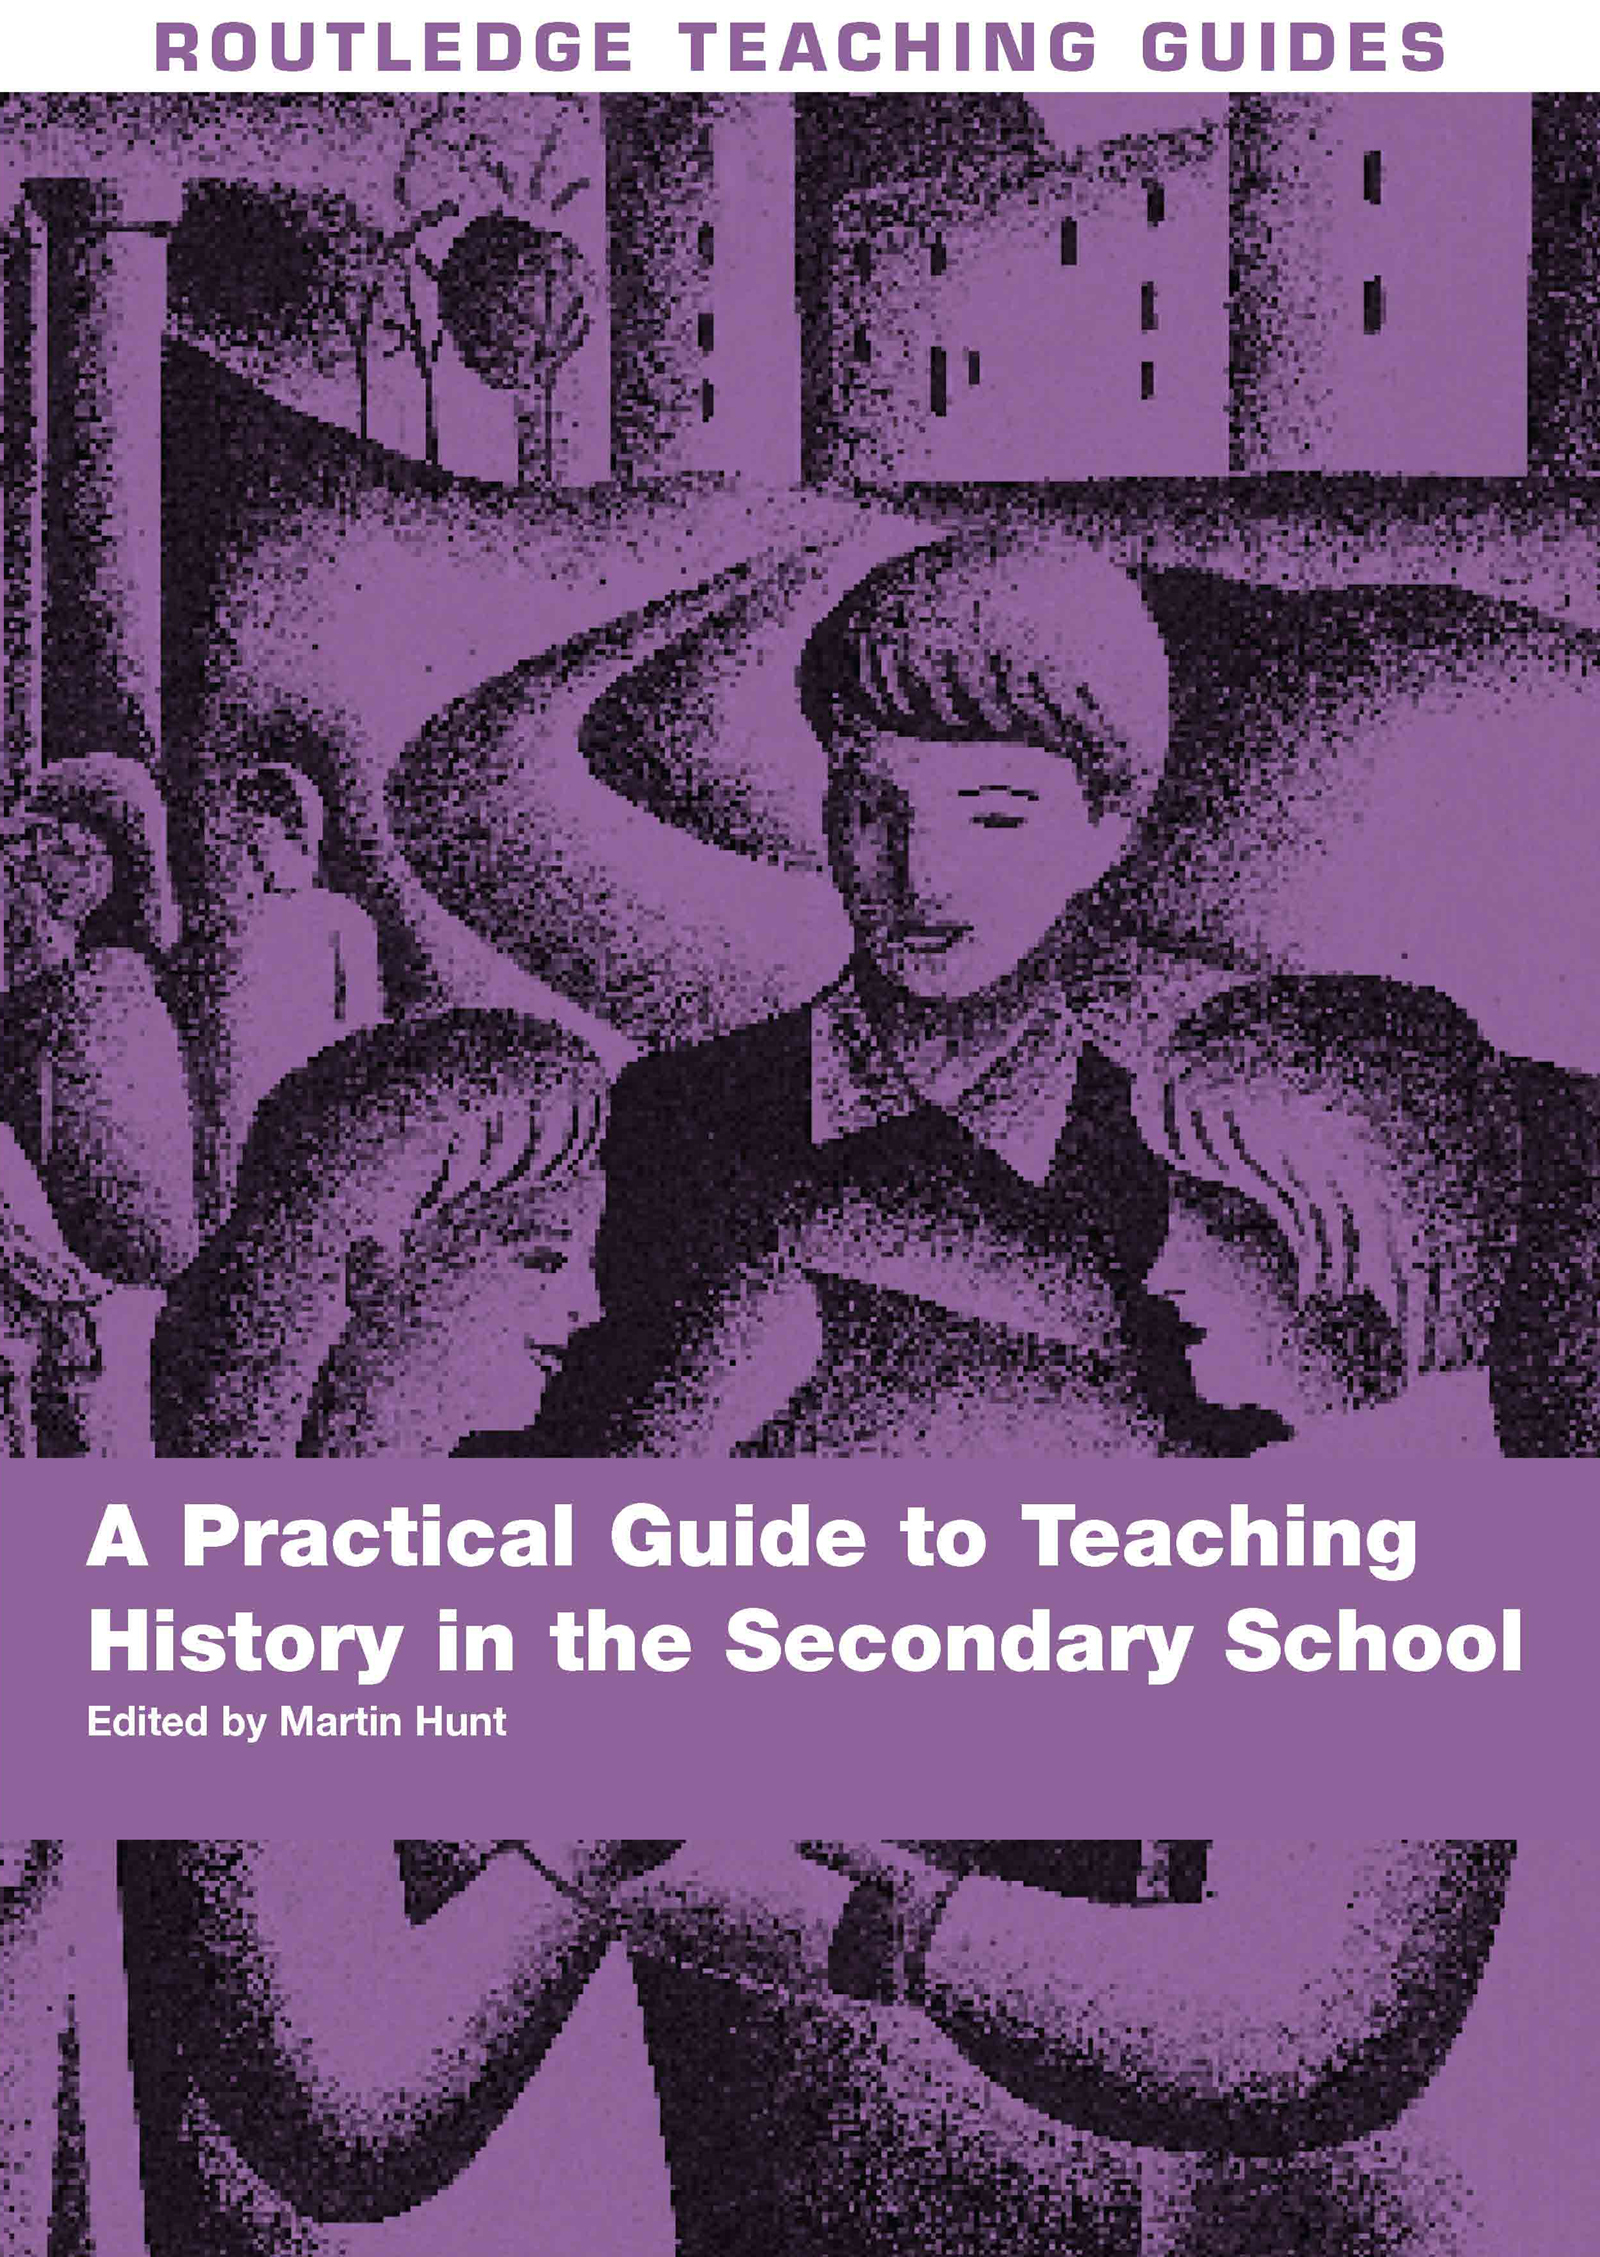 A Practical Guide to Teaching History in the Secondary School book cover